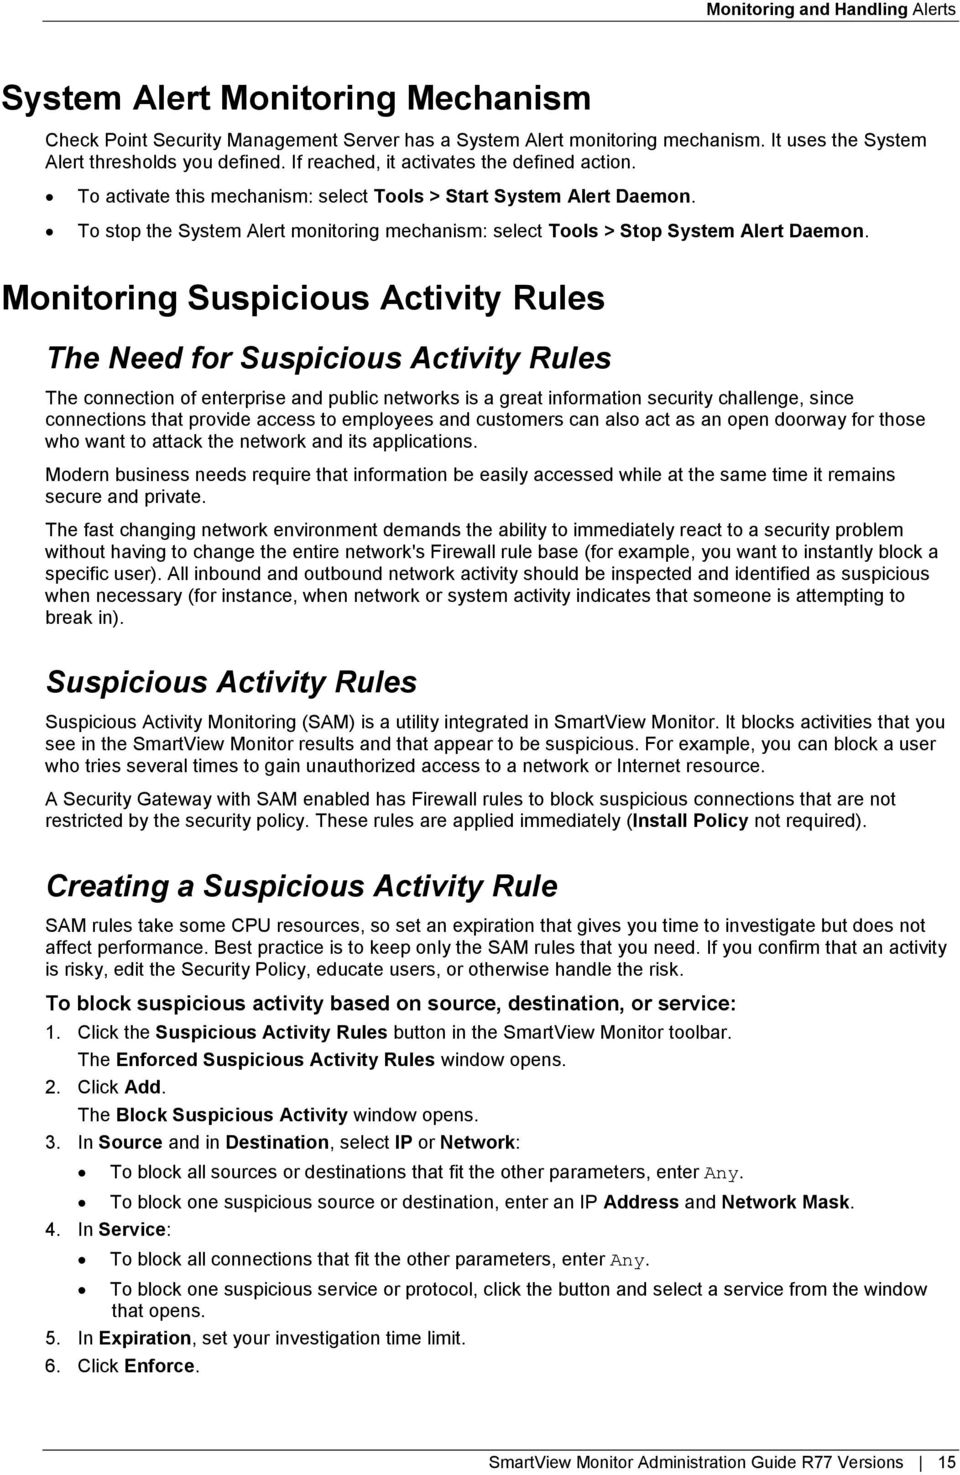 SmartView Monitor  R77 Versions  Administration Guide  21